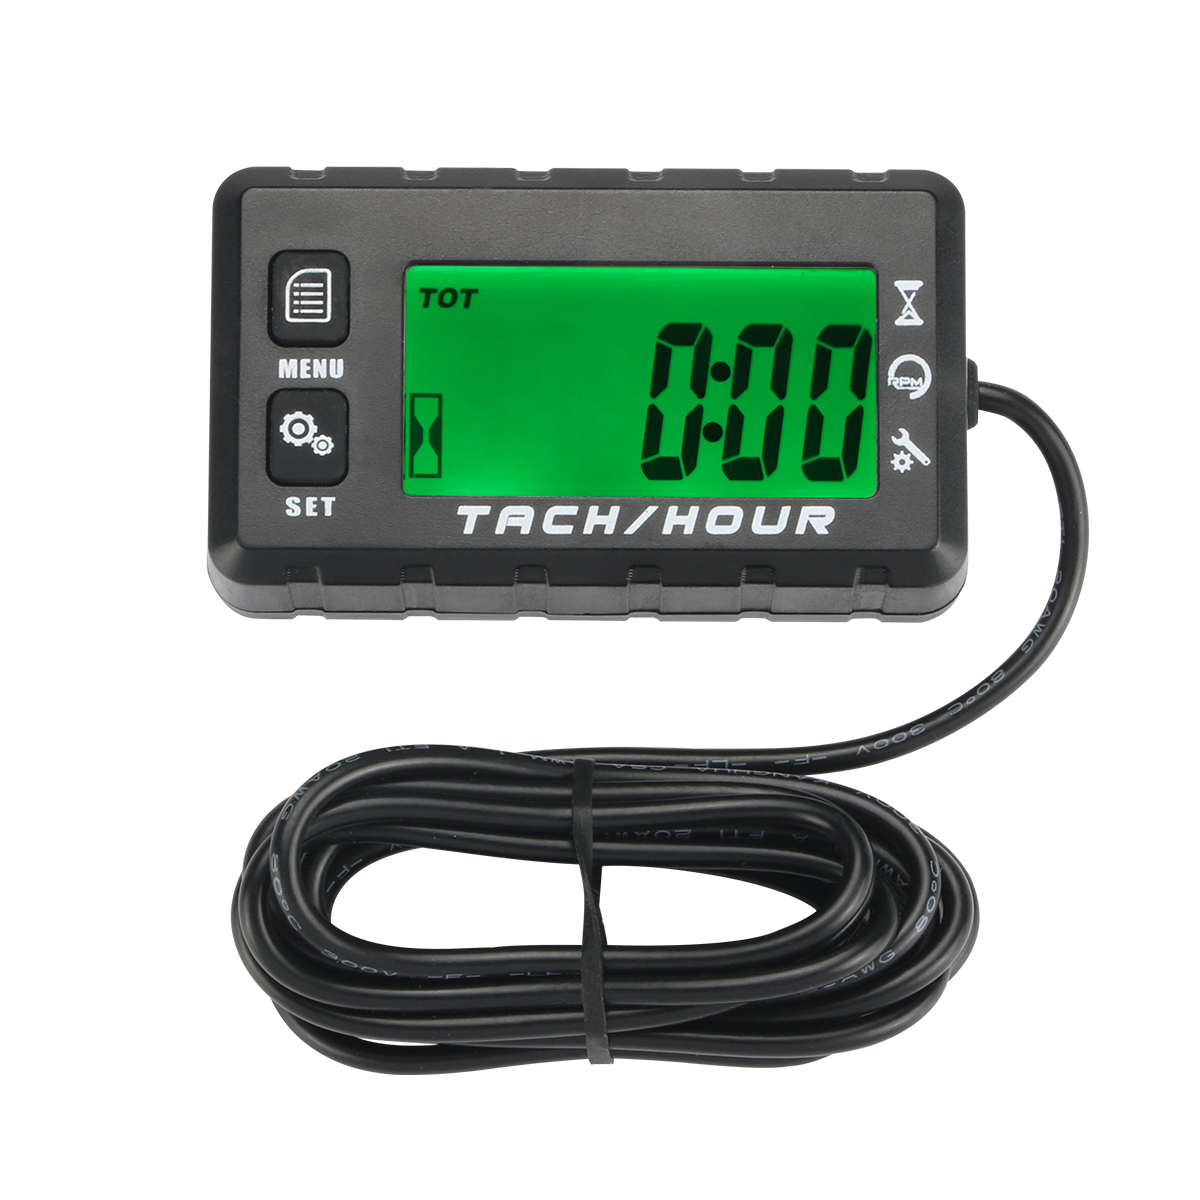 Digital Engine Hour Meter//Tach Tachometer Gauge for Small Engines Motorcycle ATV Lawn Mower Motocross UTV Boat Generator Non-replaceable Battery Tach//Hours